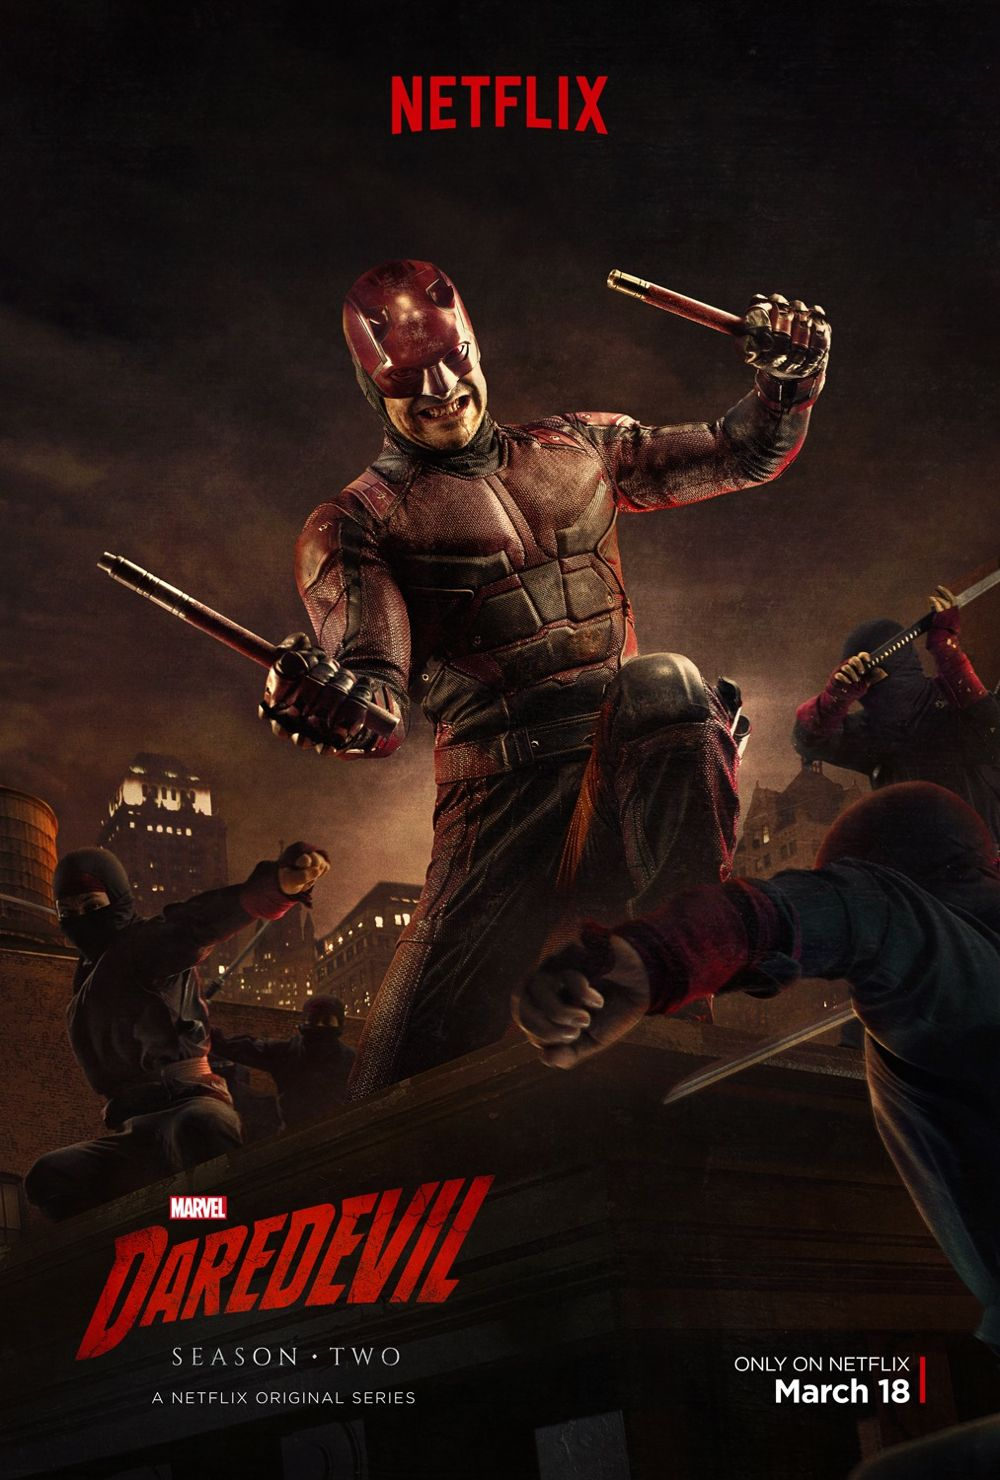 daredevil season 2 logo - photo #15